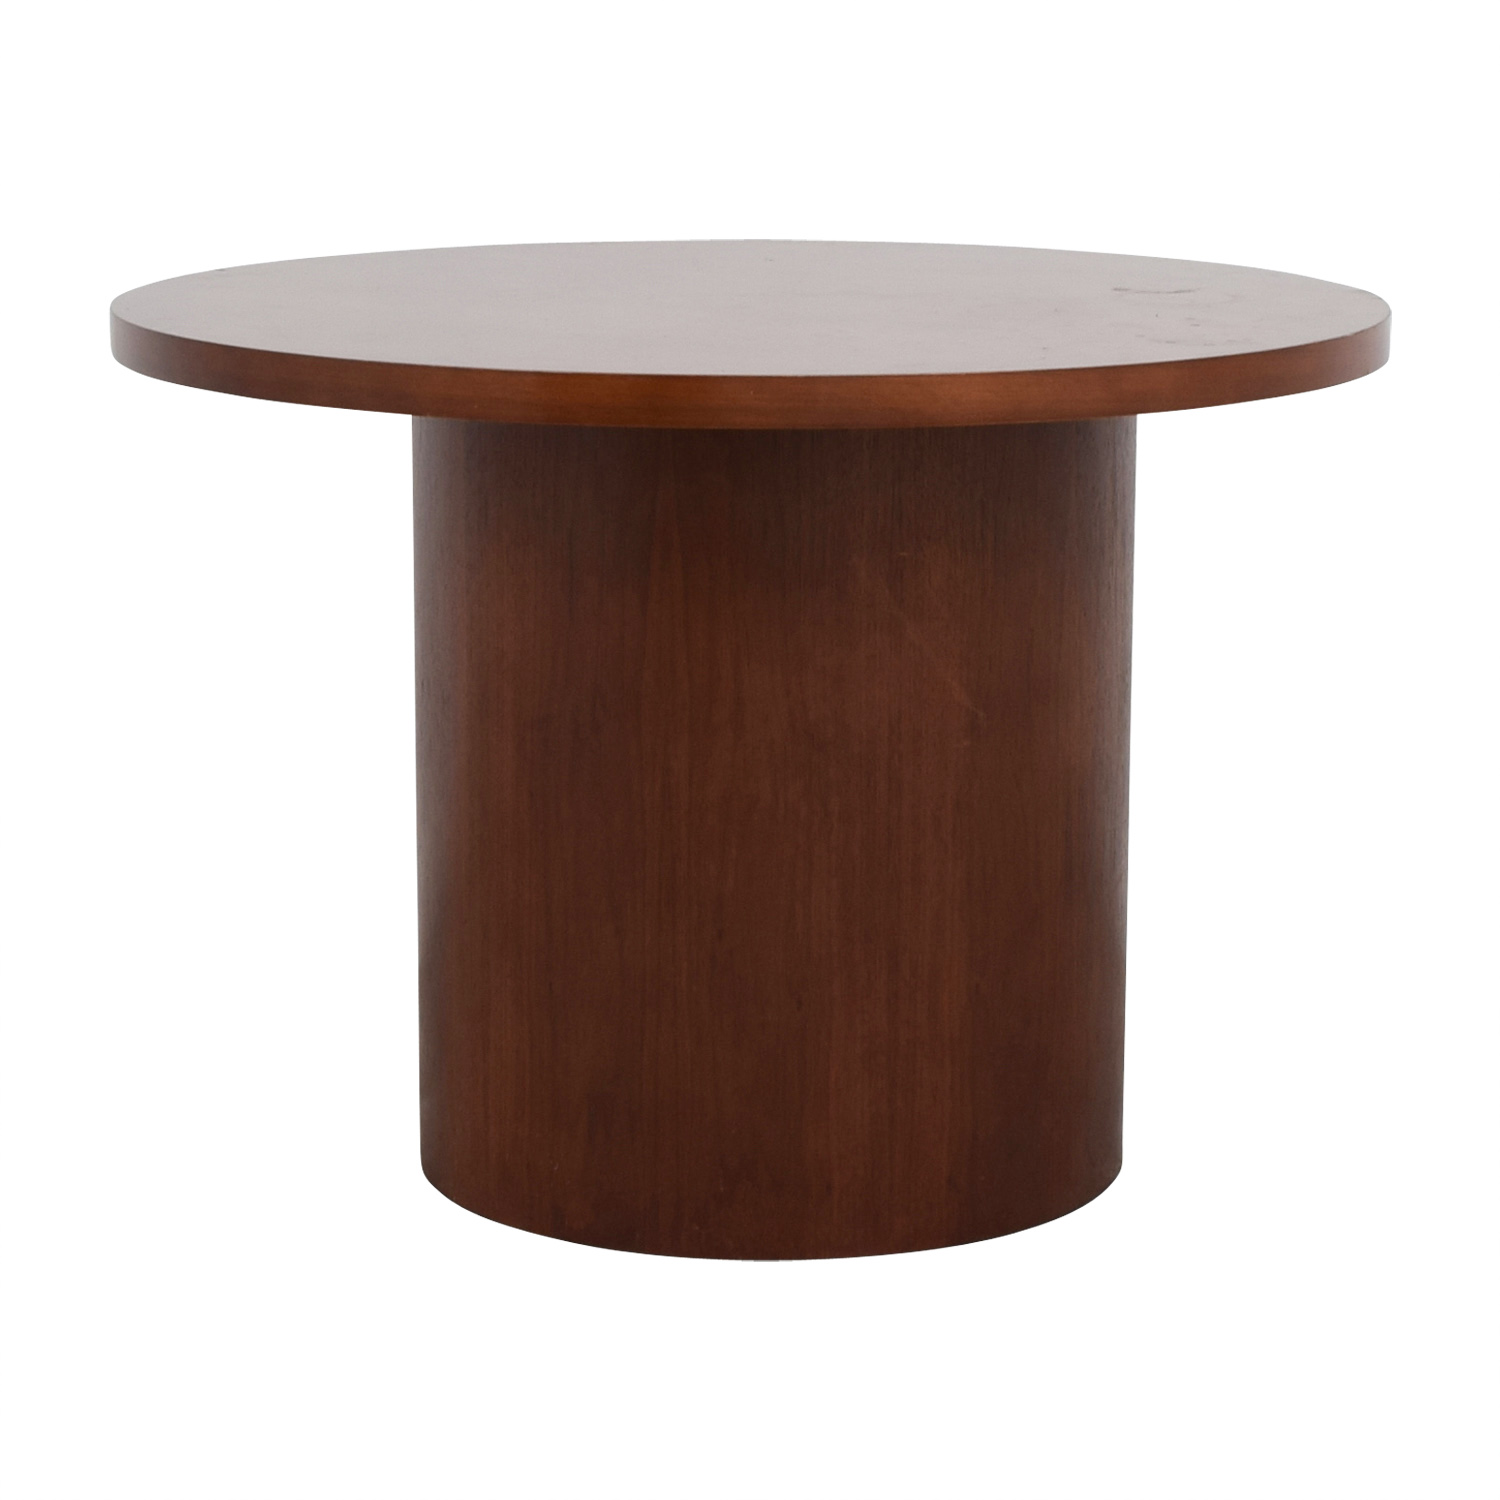 shop Round Wood Pedestal Table online